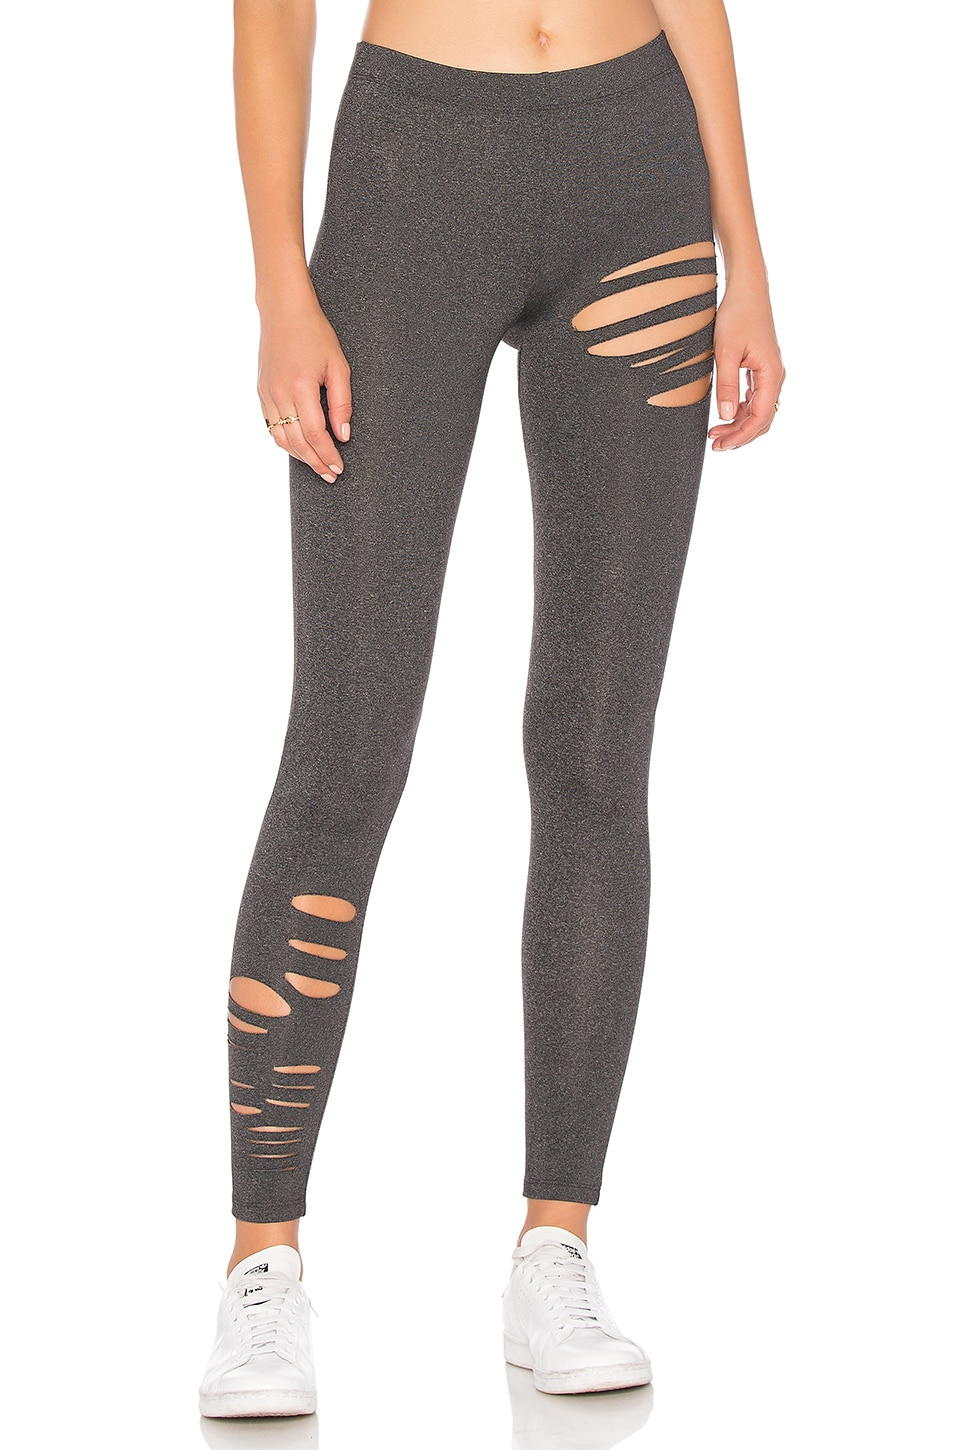 David Lerner Ripped Legging in Charcoal Heather